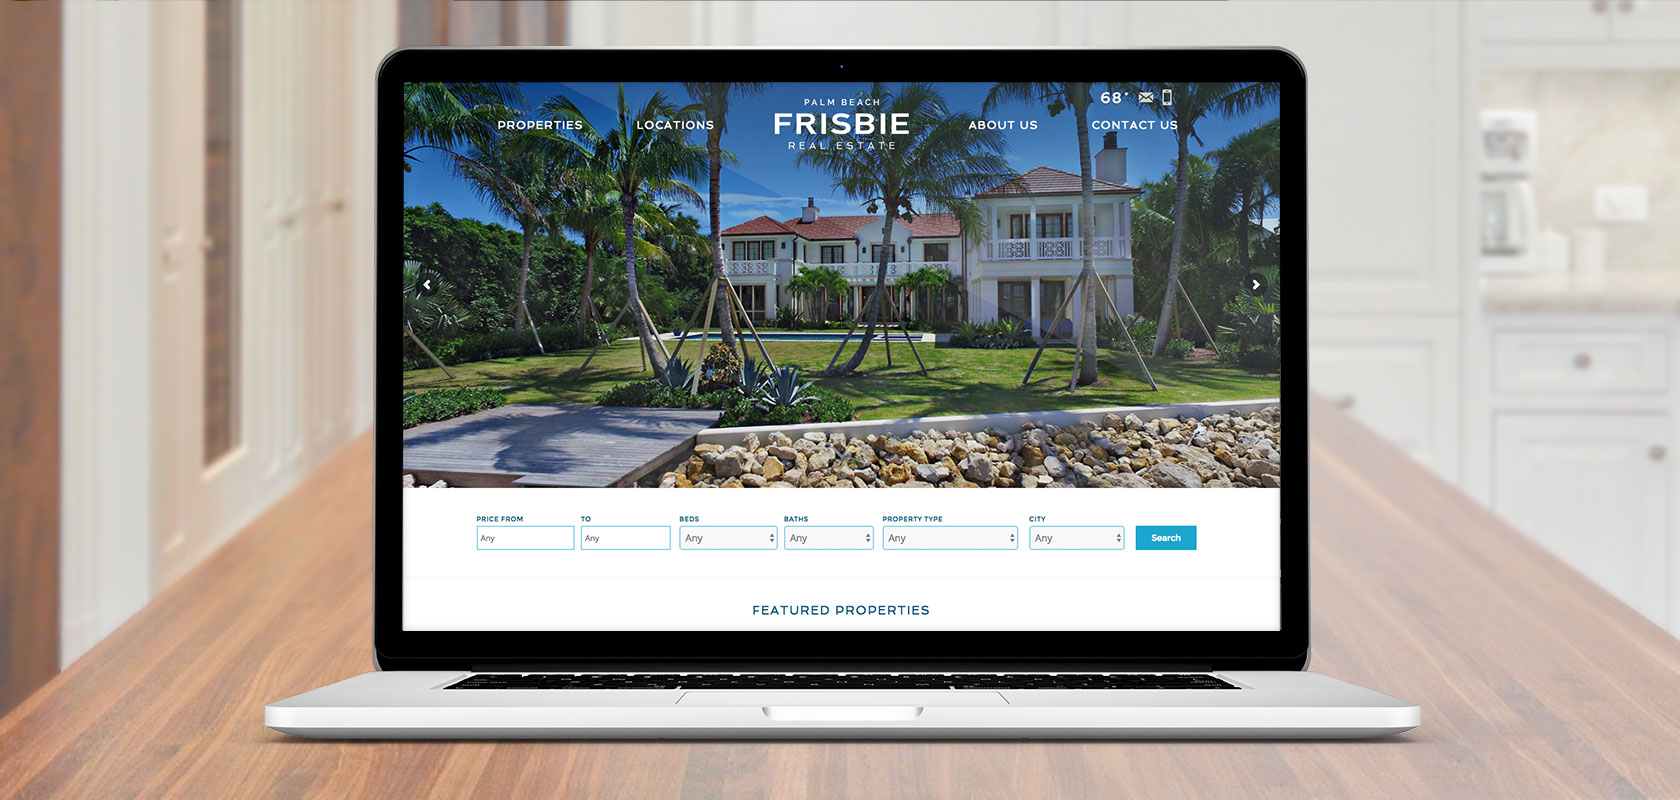 Frisbie Palm Beach website